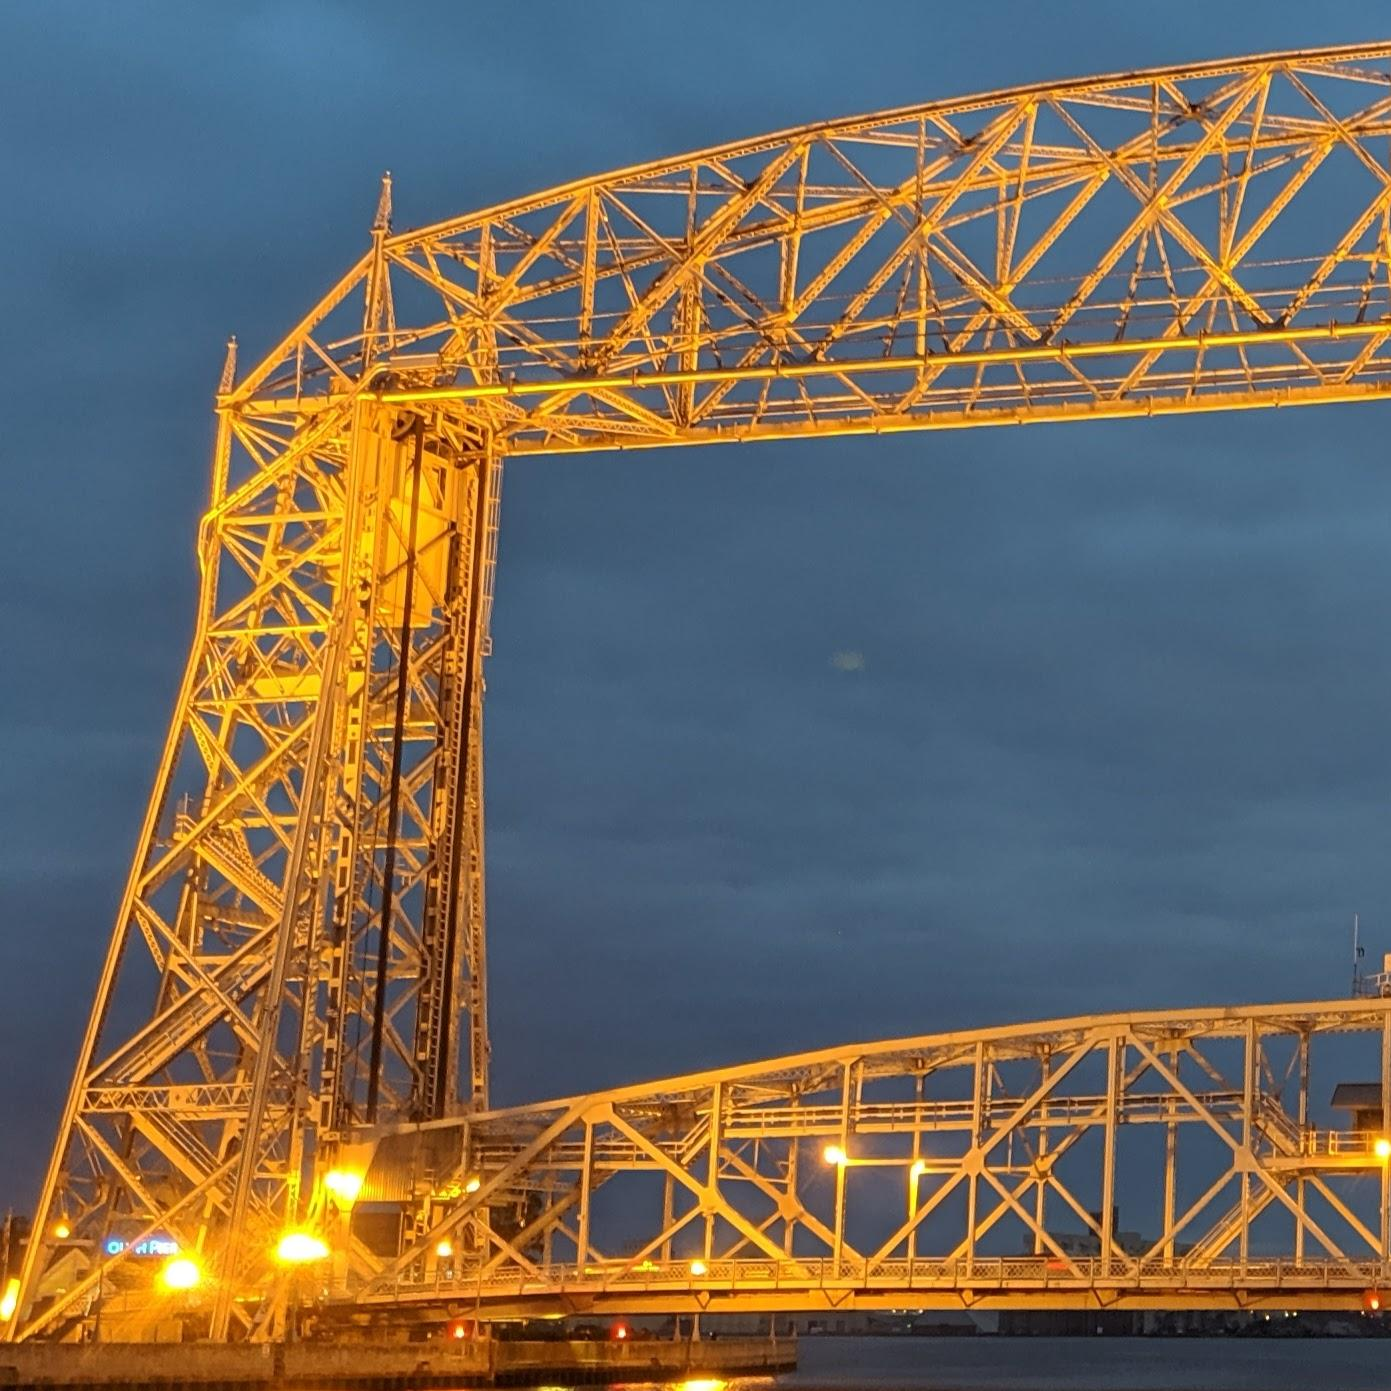 A photograph of the lift bridge in Duluth, Minnesota at dusk.